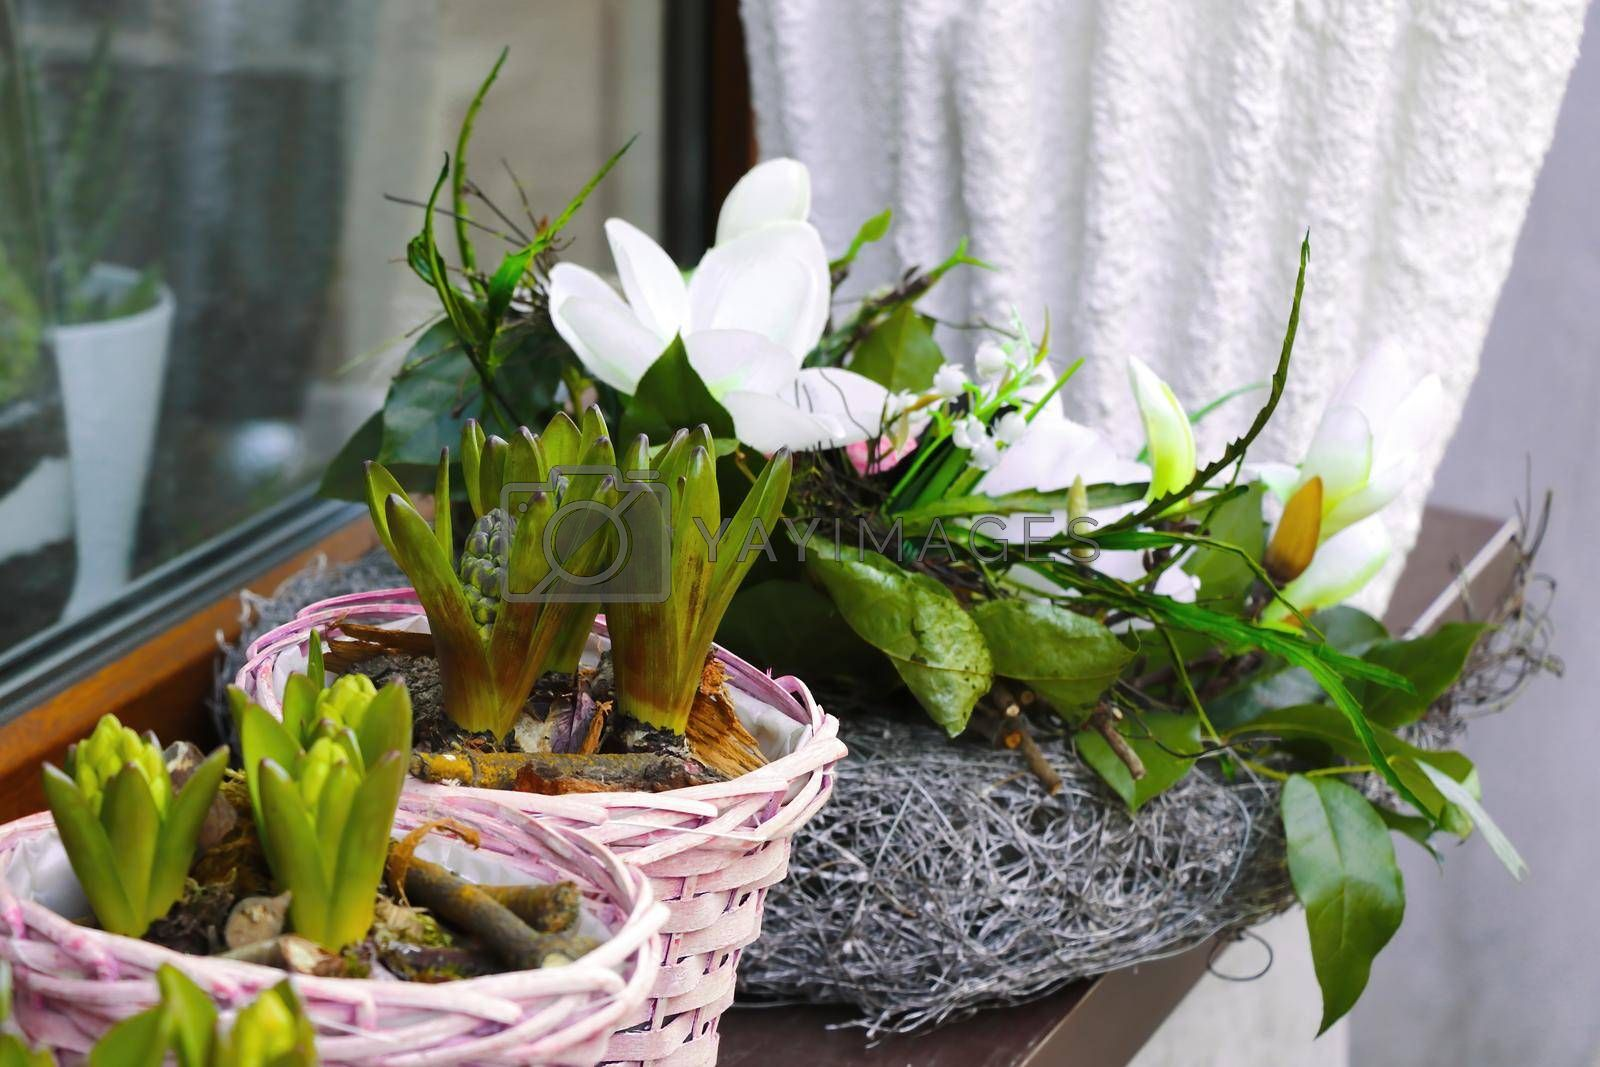 Royalty free image of There is a flowerpot with flowers on the windowsill. by kip02kas